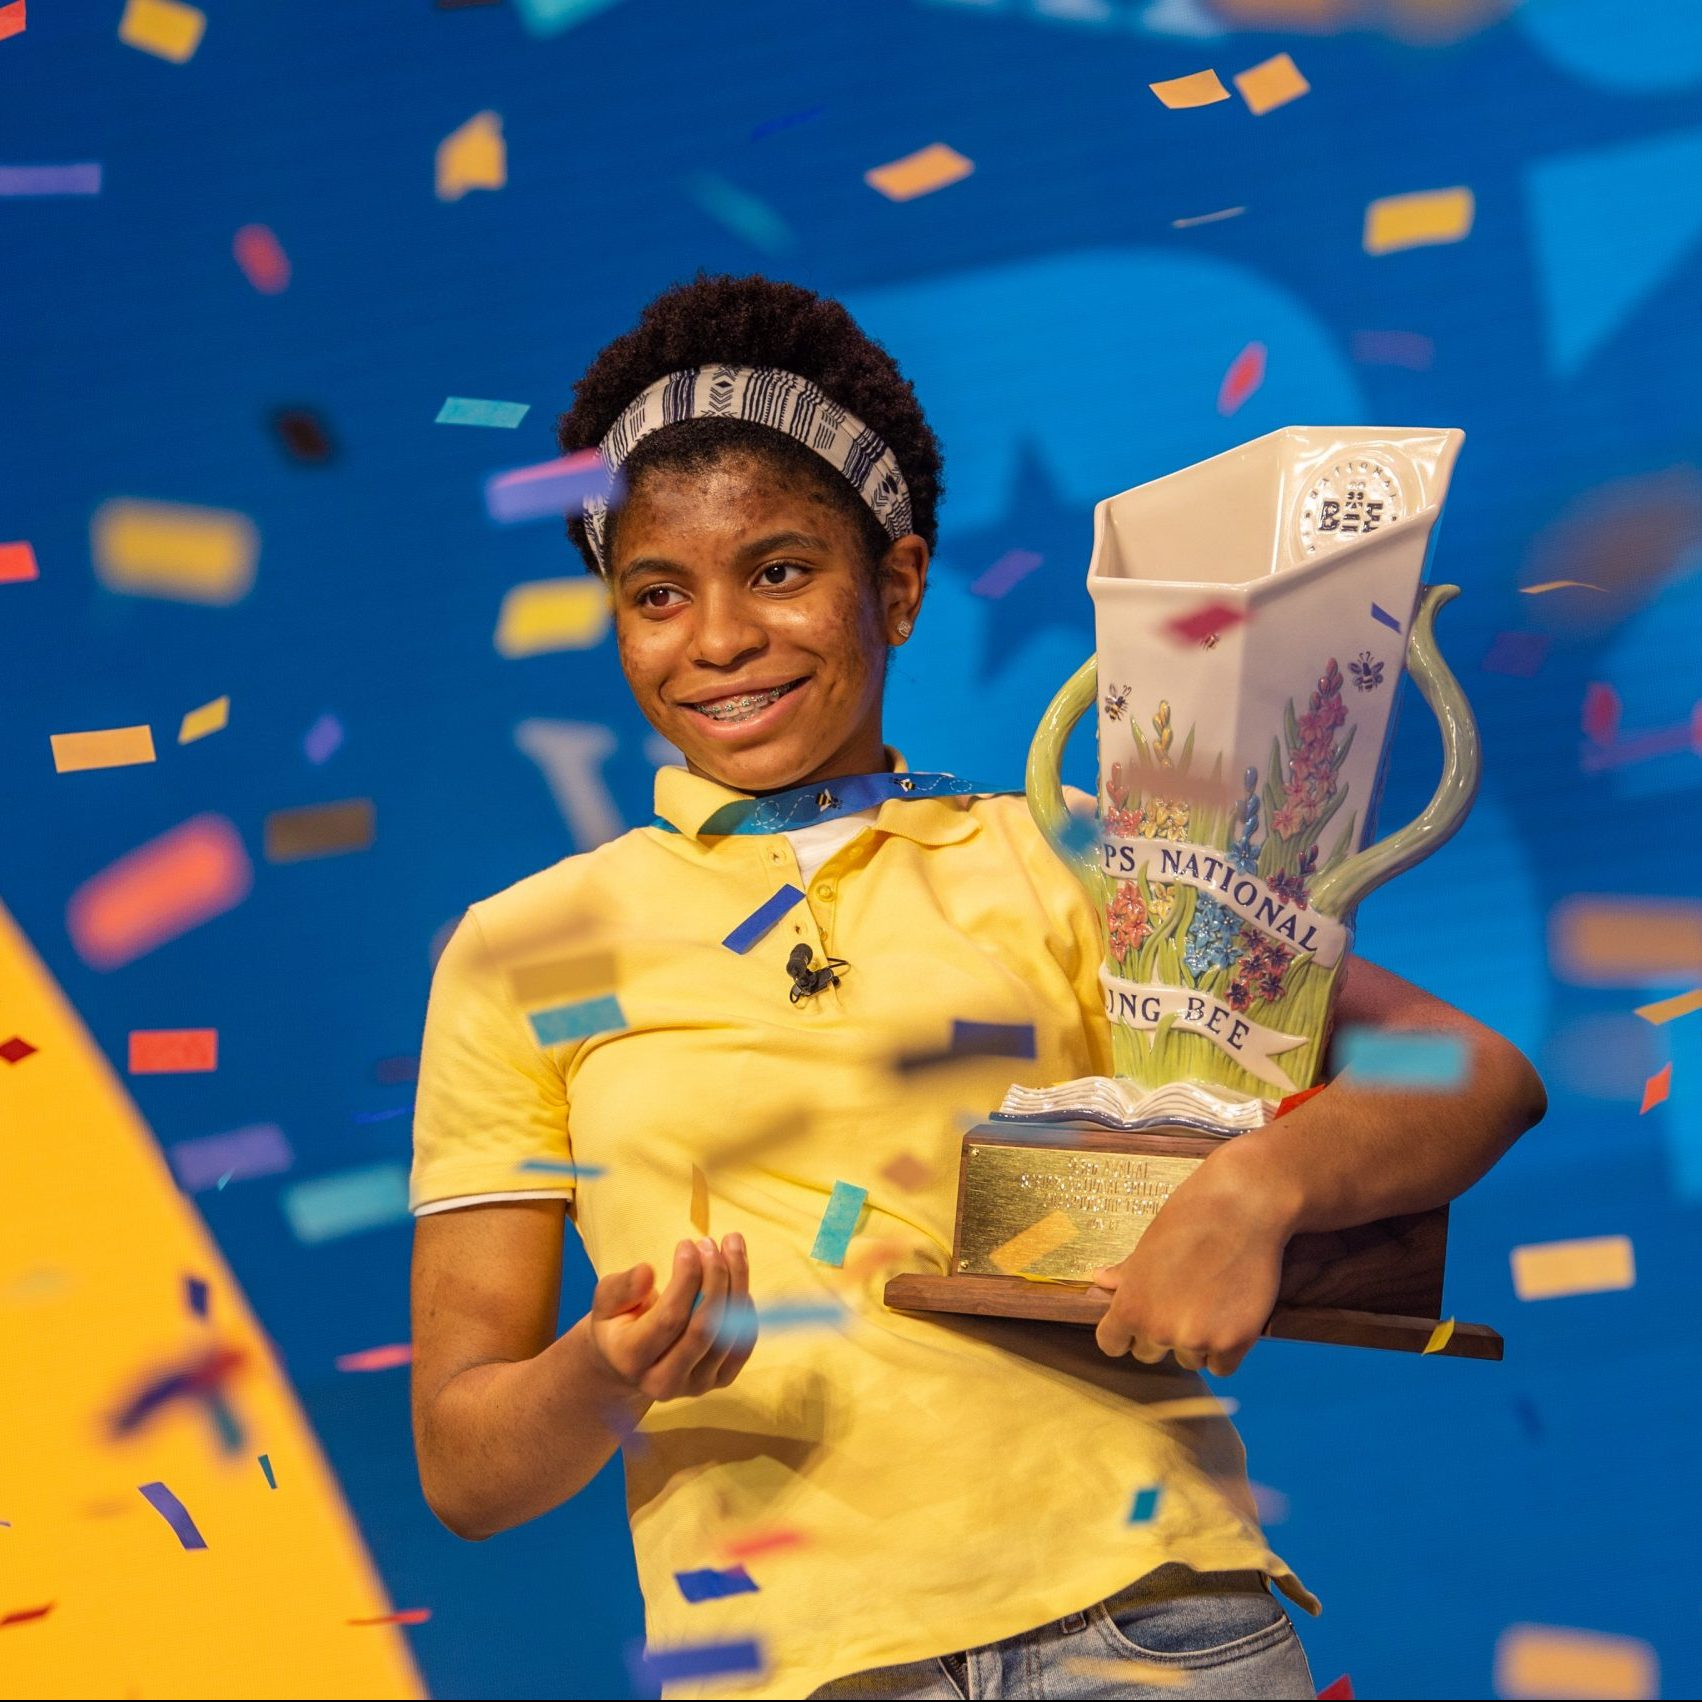 Image depicting 14-year-old girl makes history at US national spelling bee